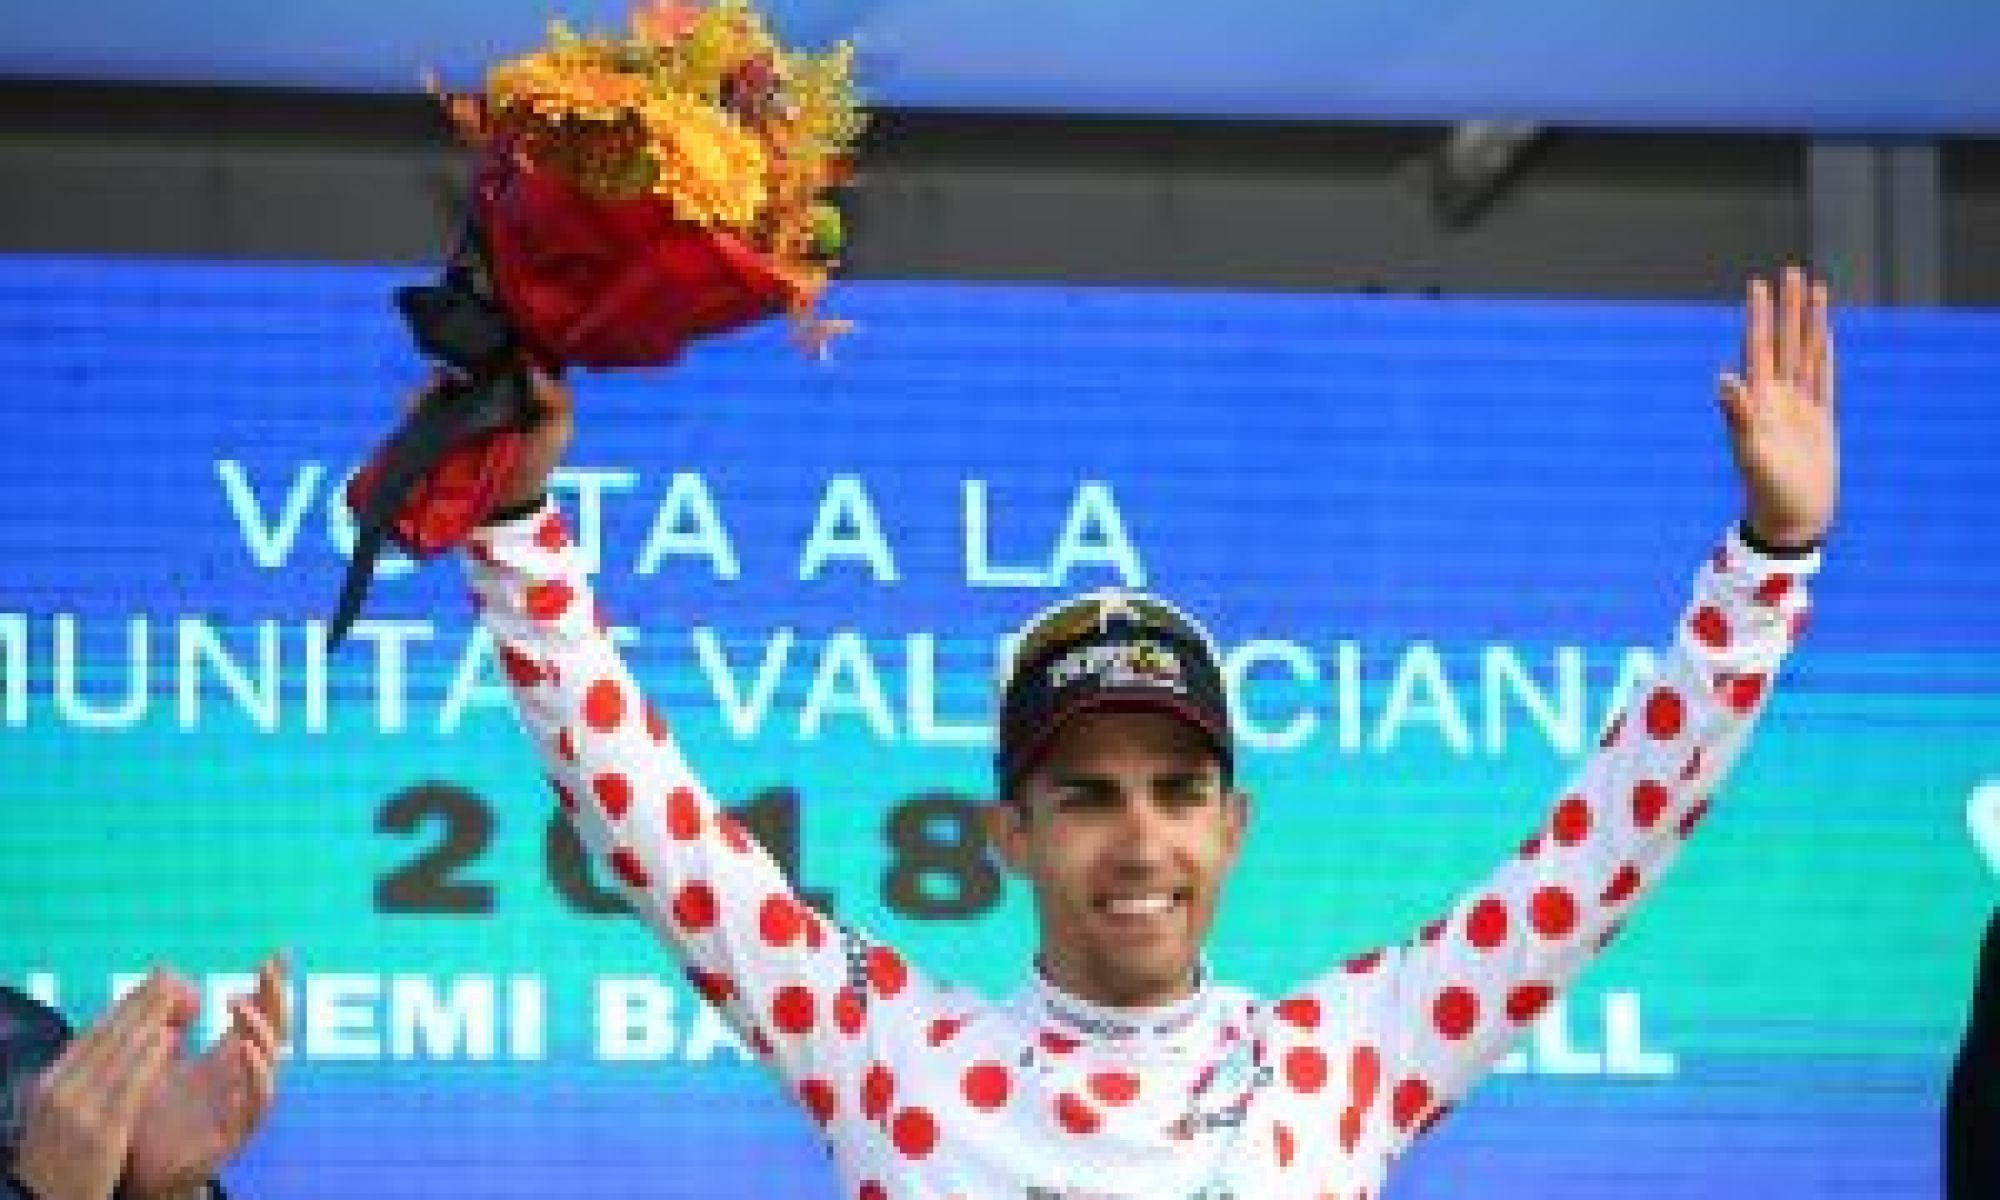 Spanish rider has four-year doping ban reinstated